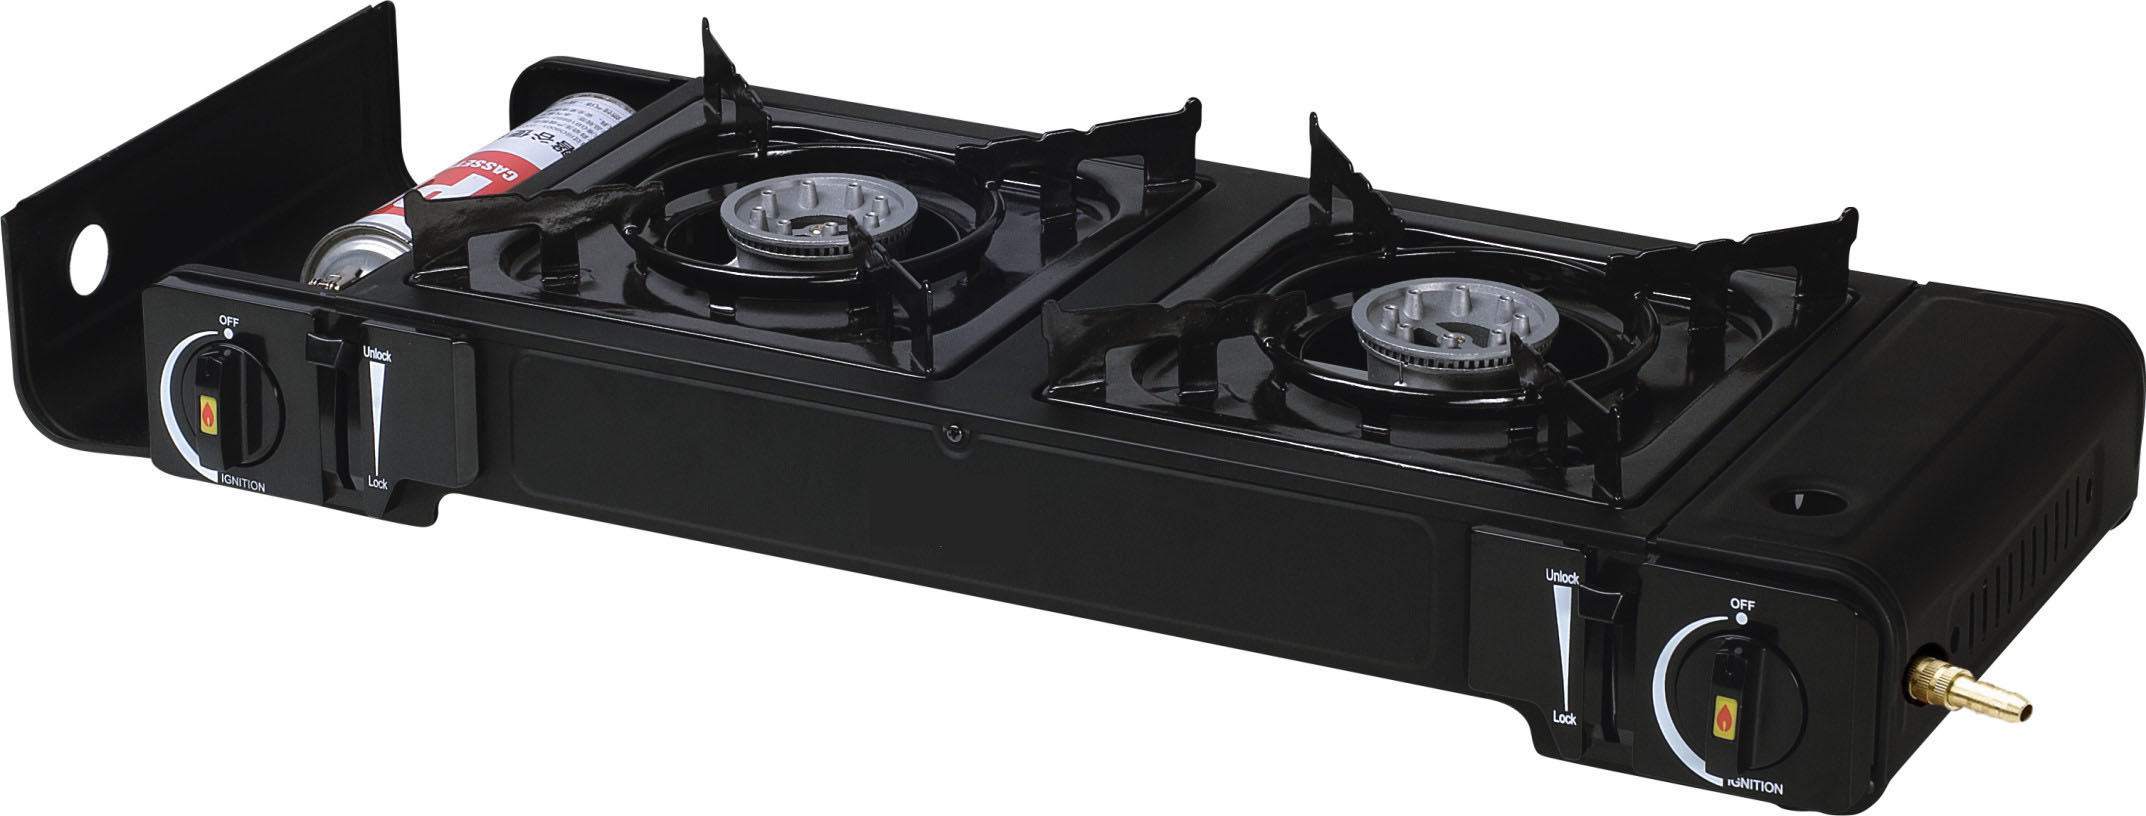 Double Burner Portable Gas Stove - Gas Stove &FreeStanding Oven ...